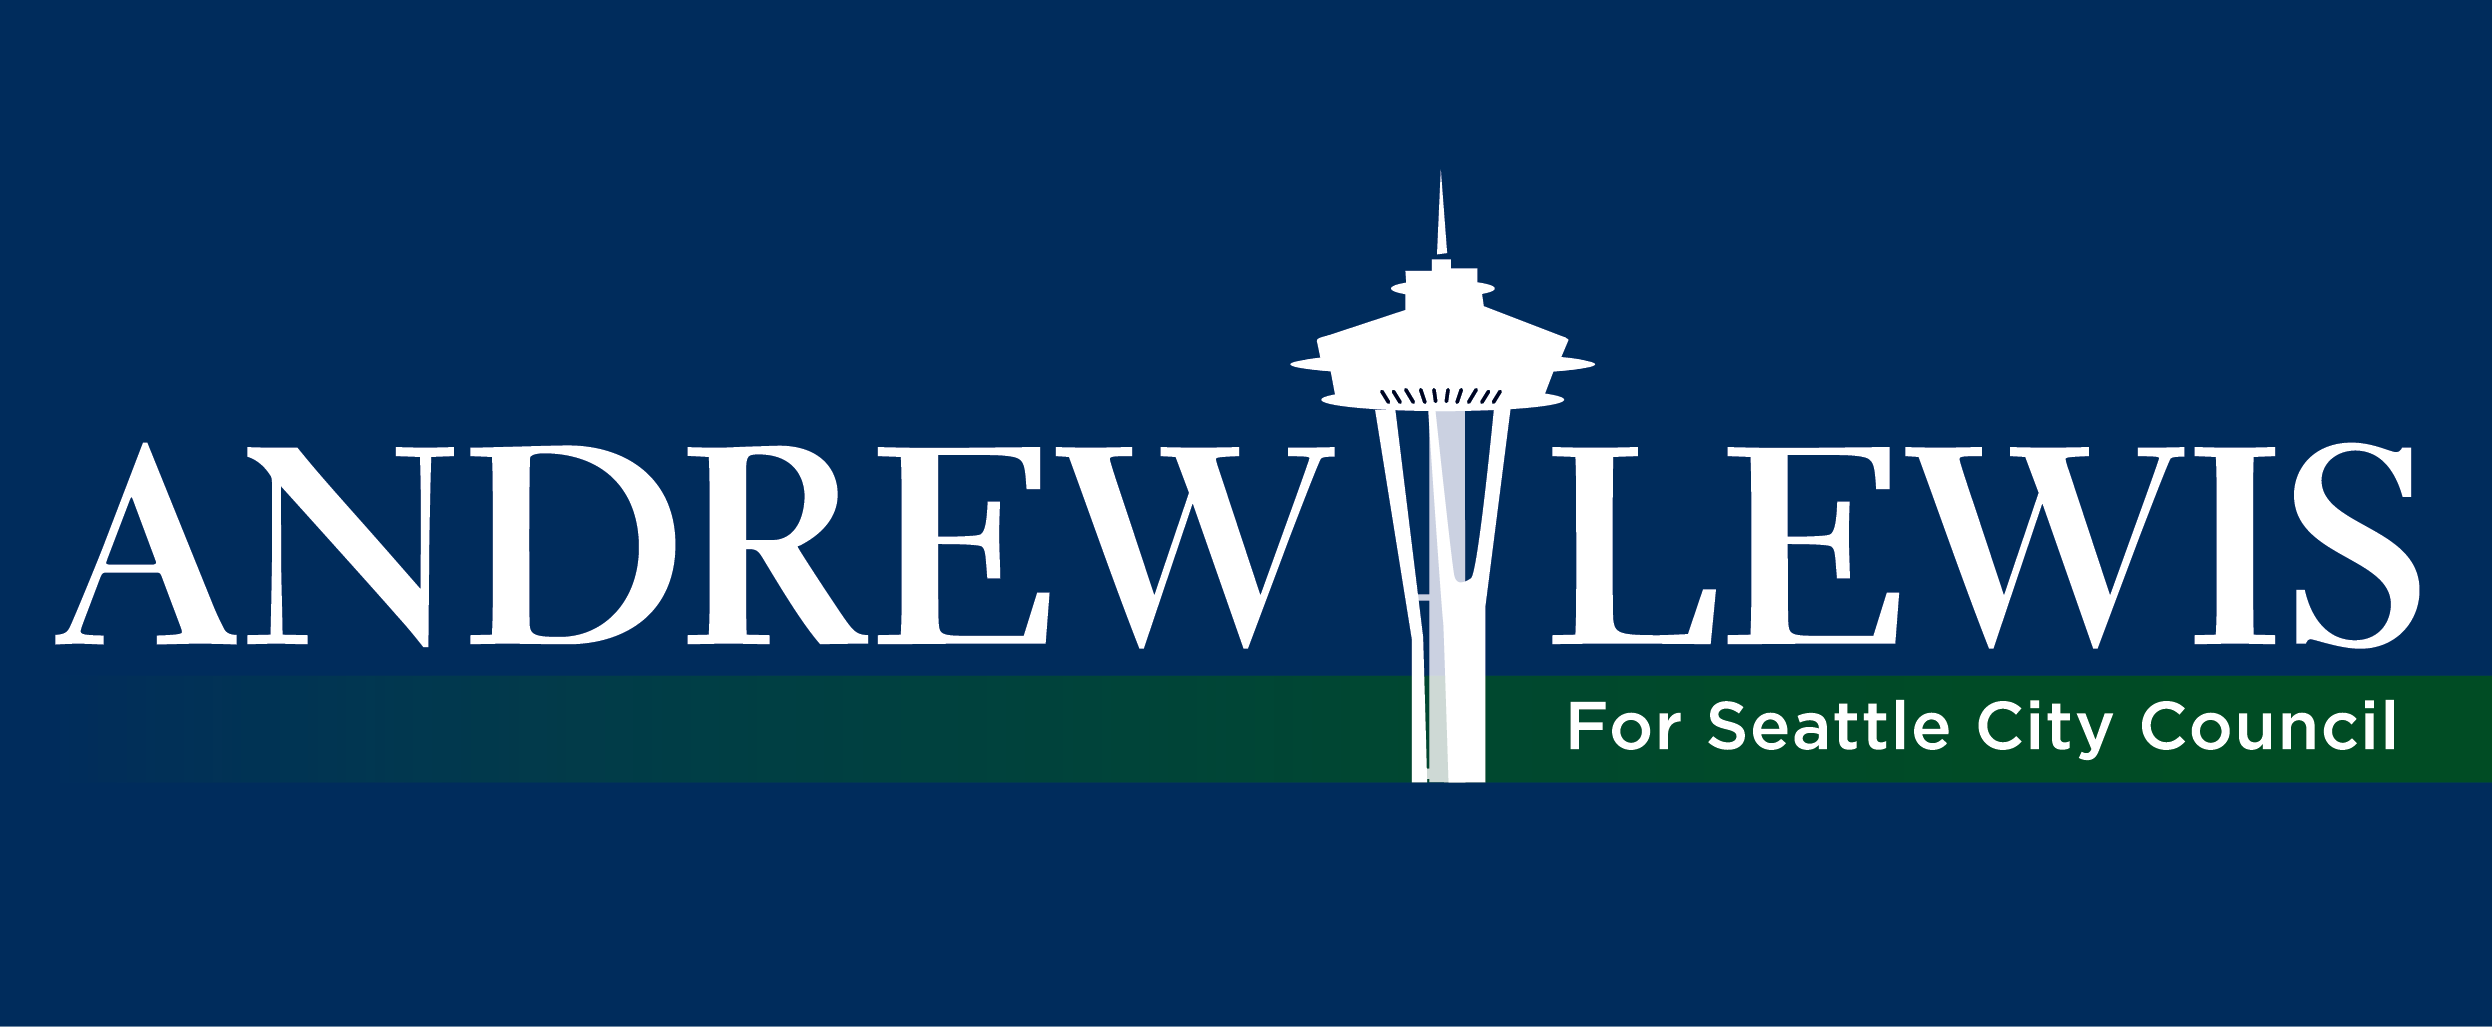 Andrew Lewis For Seattle City Council